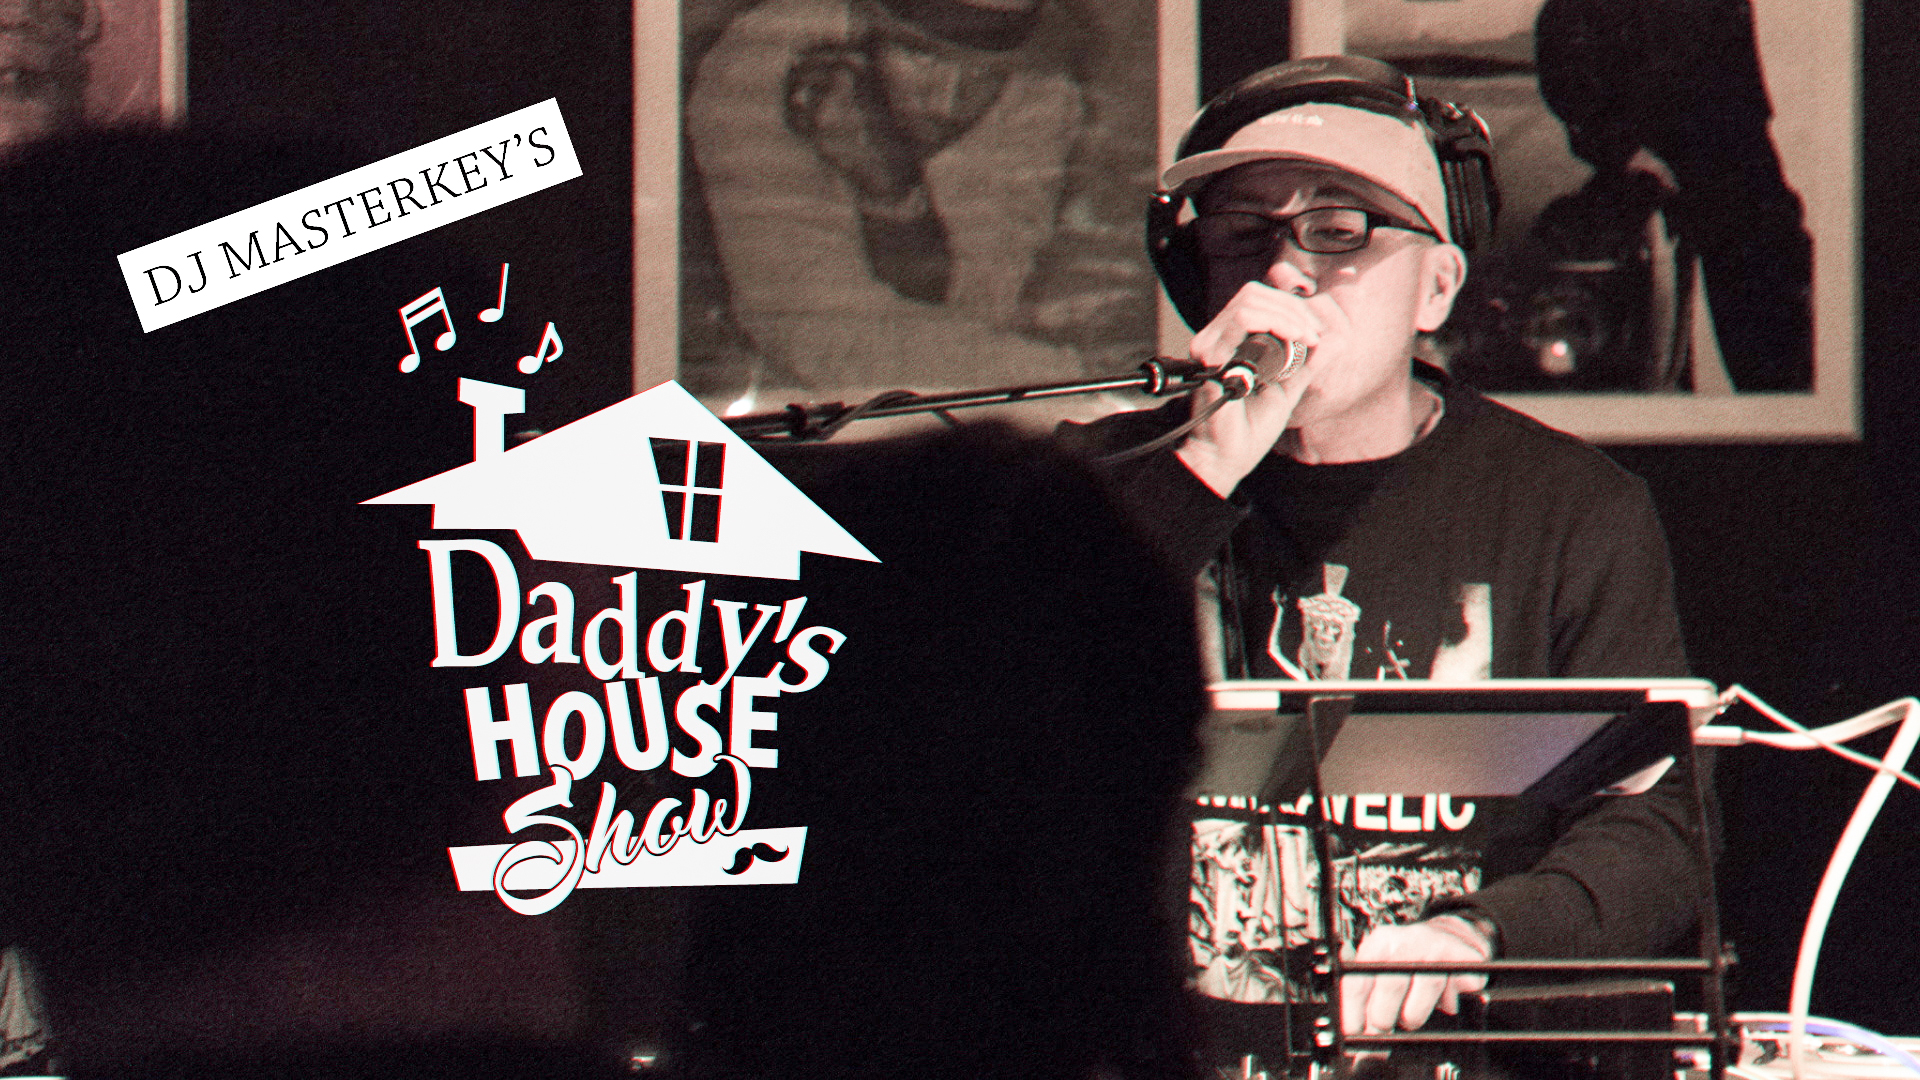 YouTube【DADDY'S HOUSE SHOW】